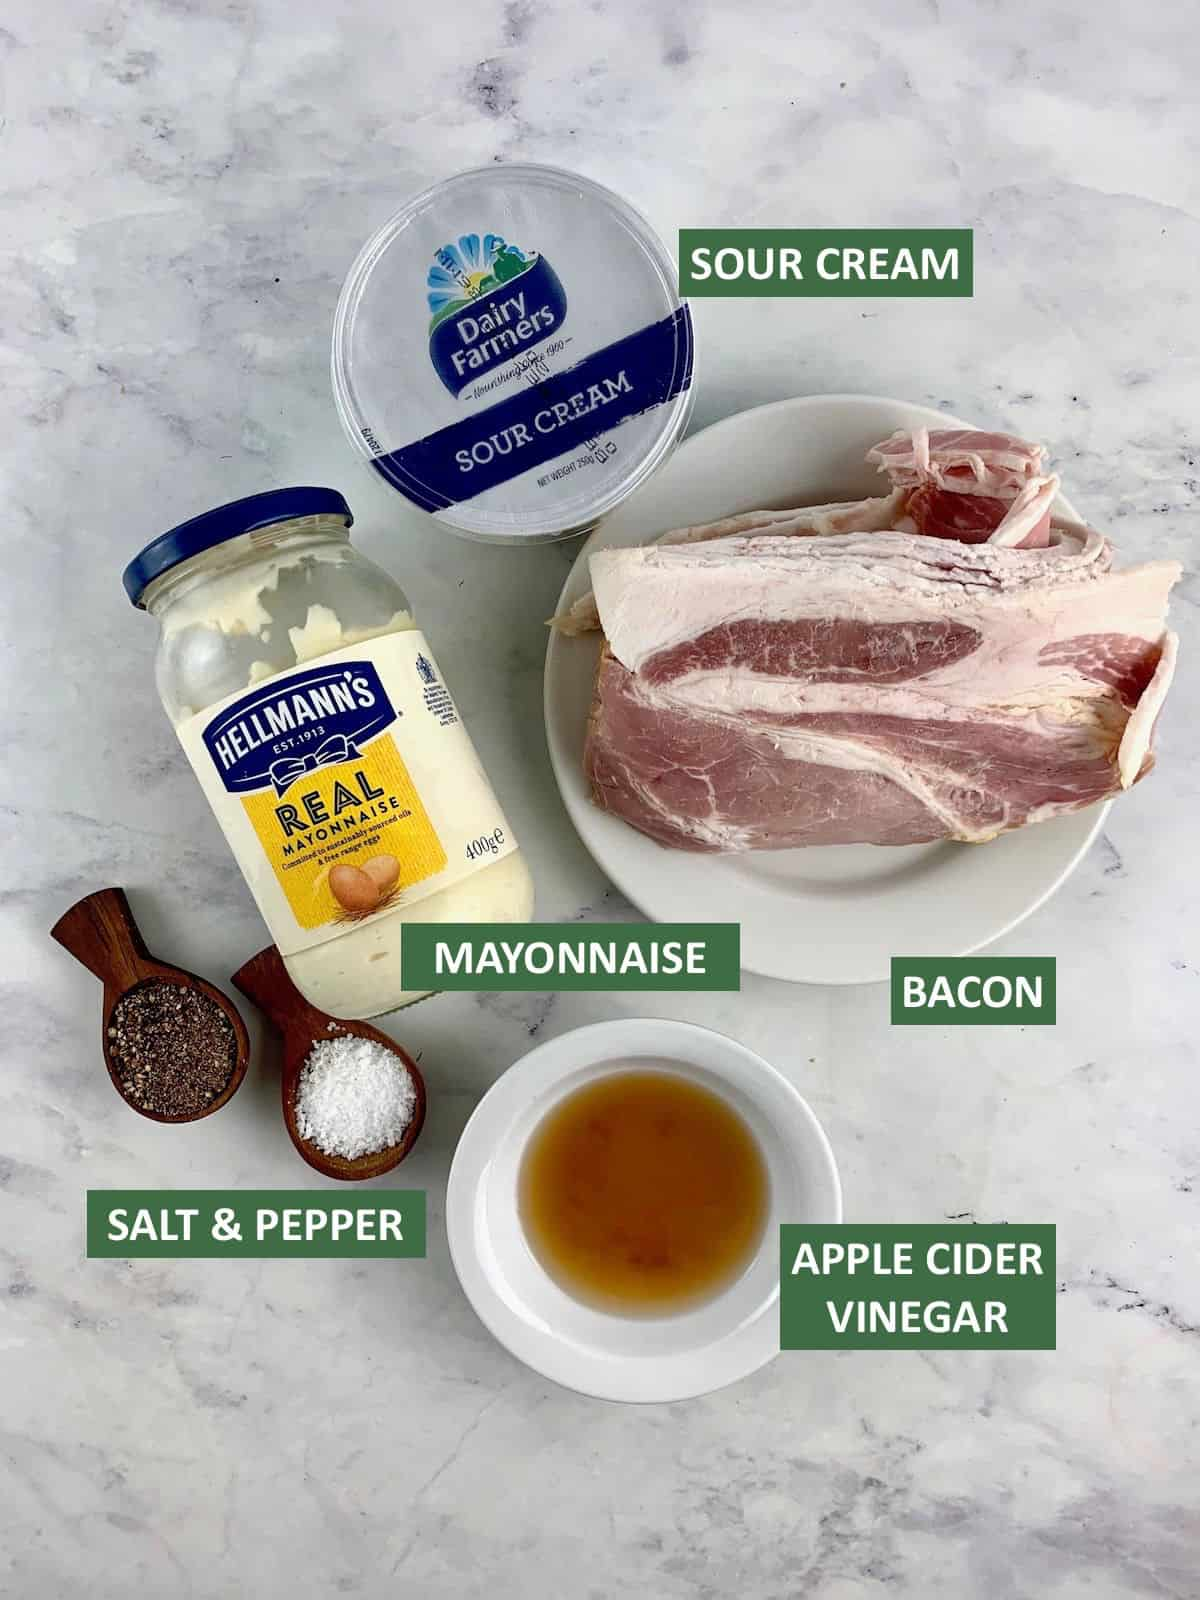 INGREDIENTS TO MAKE CREAMY BACON DRESSING